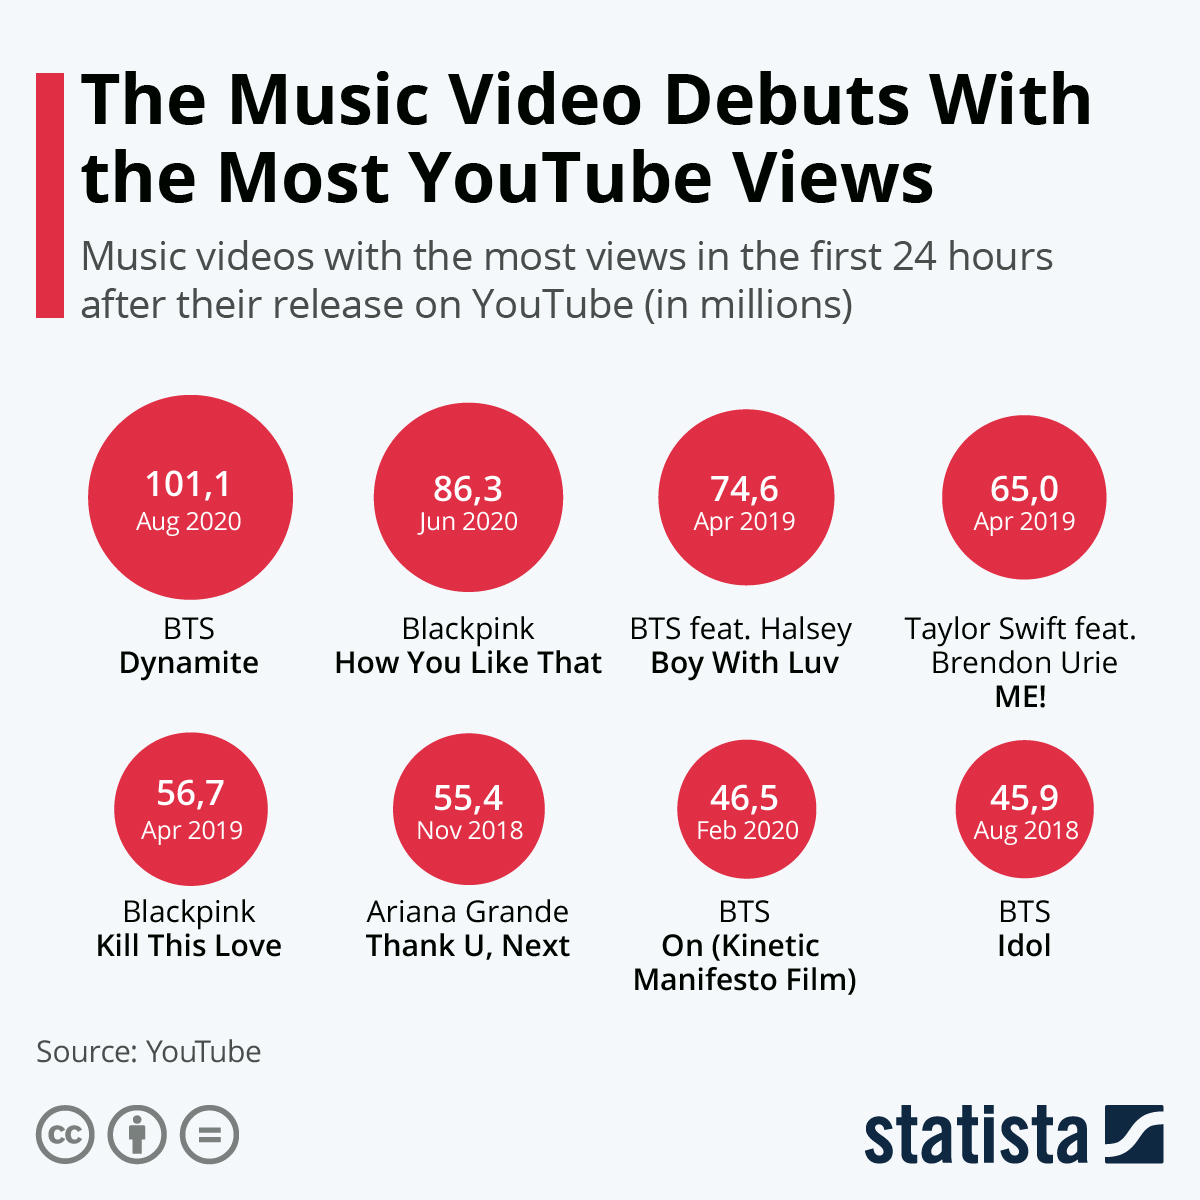 Chart Bts Break Record For Debut With Most Youtube Views Statista